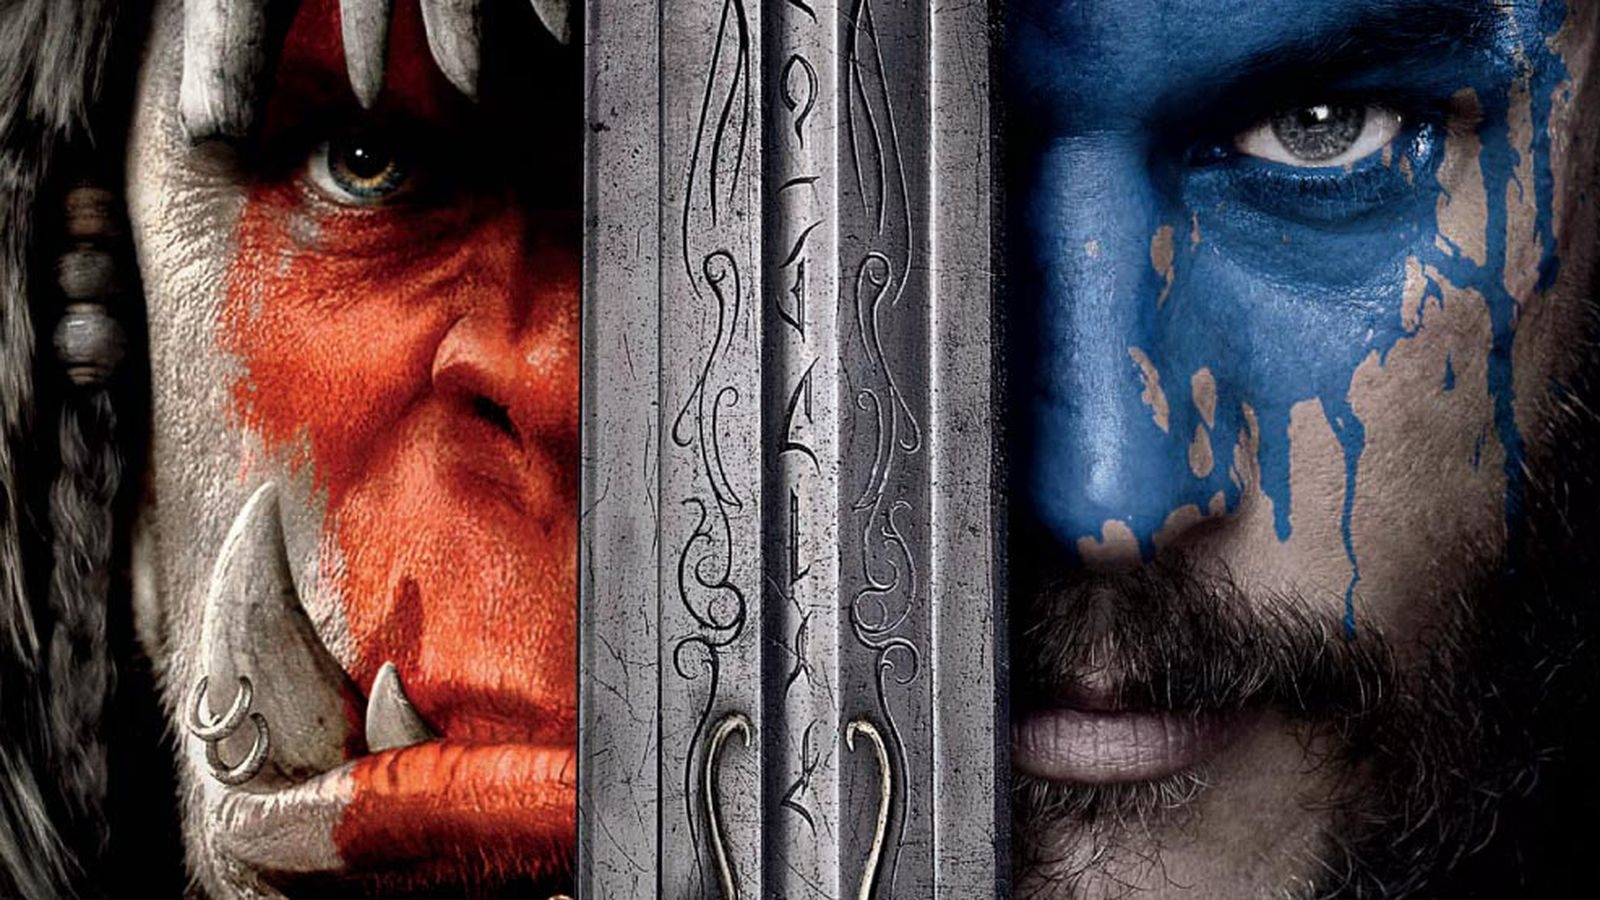 Review2Go: Warcraft